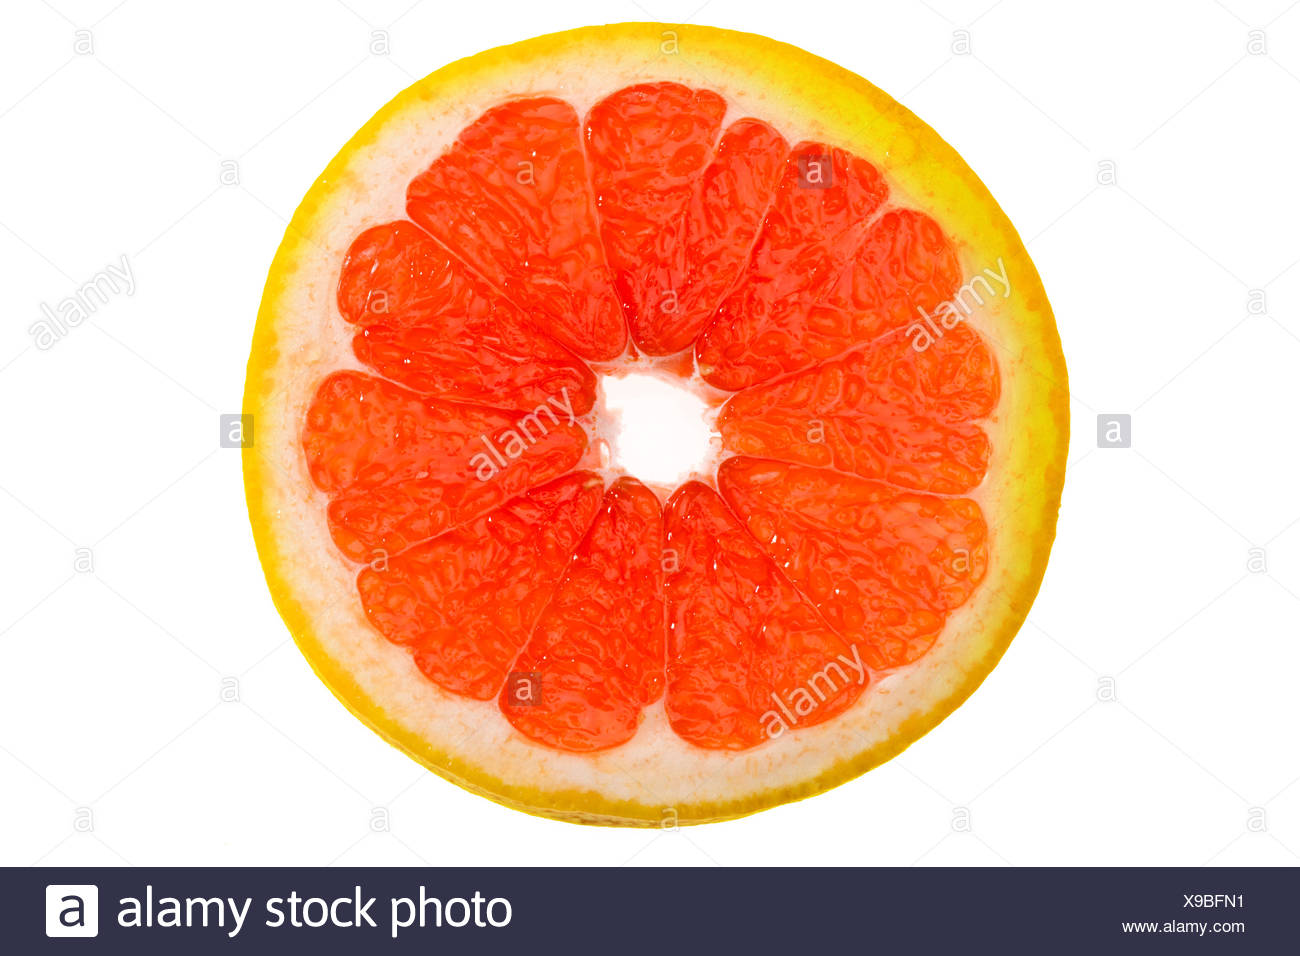 close up view of fresh grapefruit slice on white - Stock Image